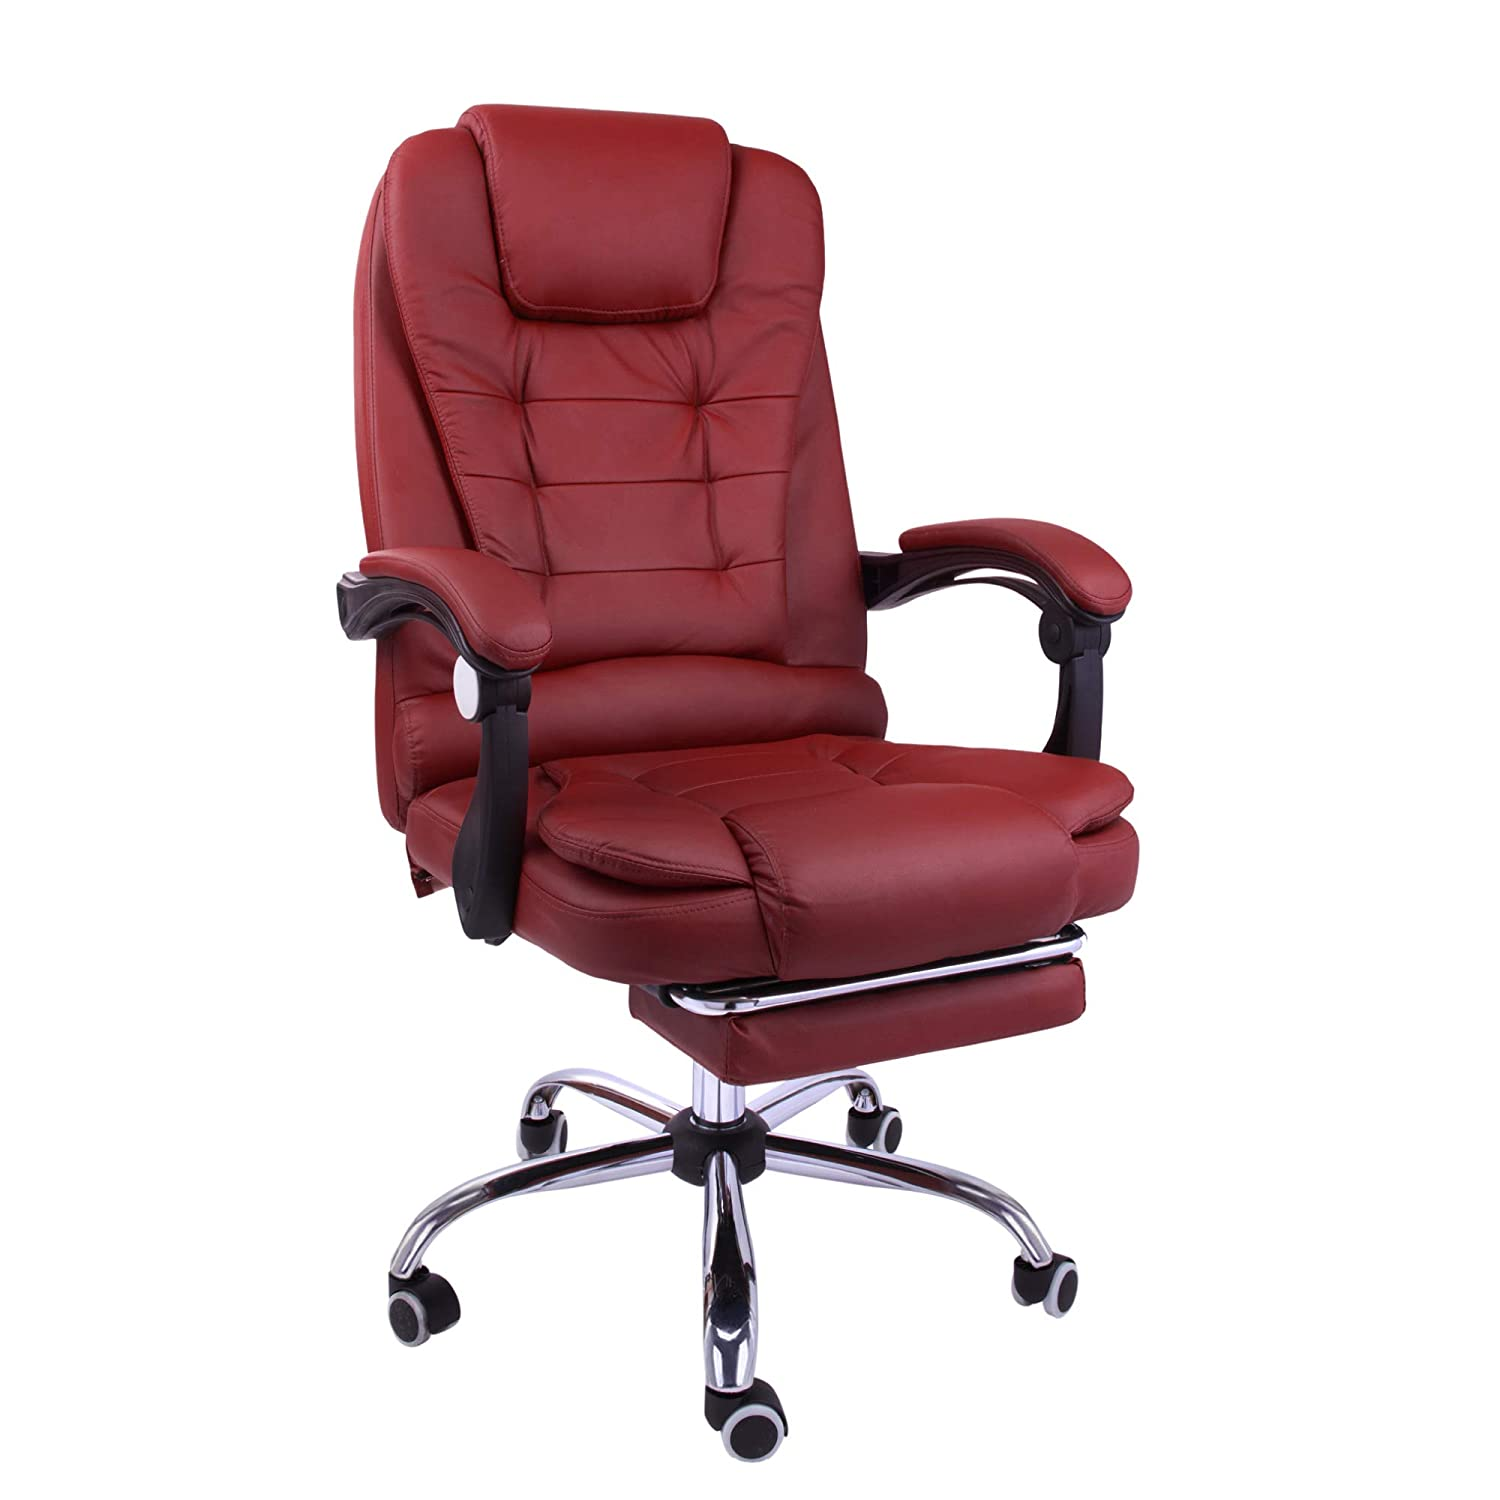 Halter Reclining Leather Office Chair - Modern Executive Adjustable Rolling Swivel Chair Headrest with Retractable Footrest (Burgundy)